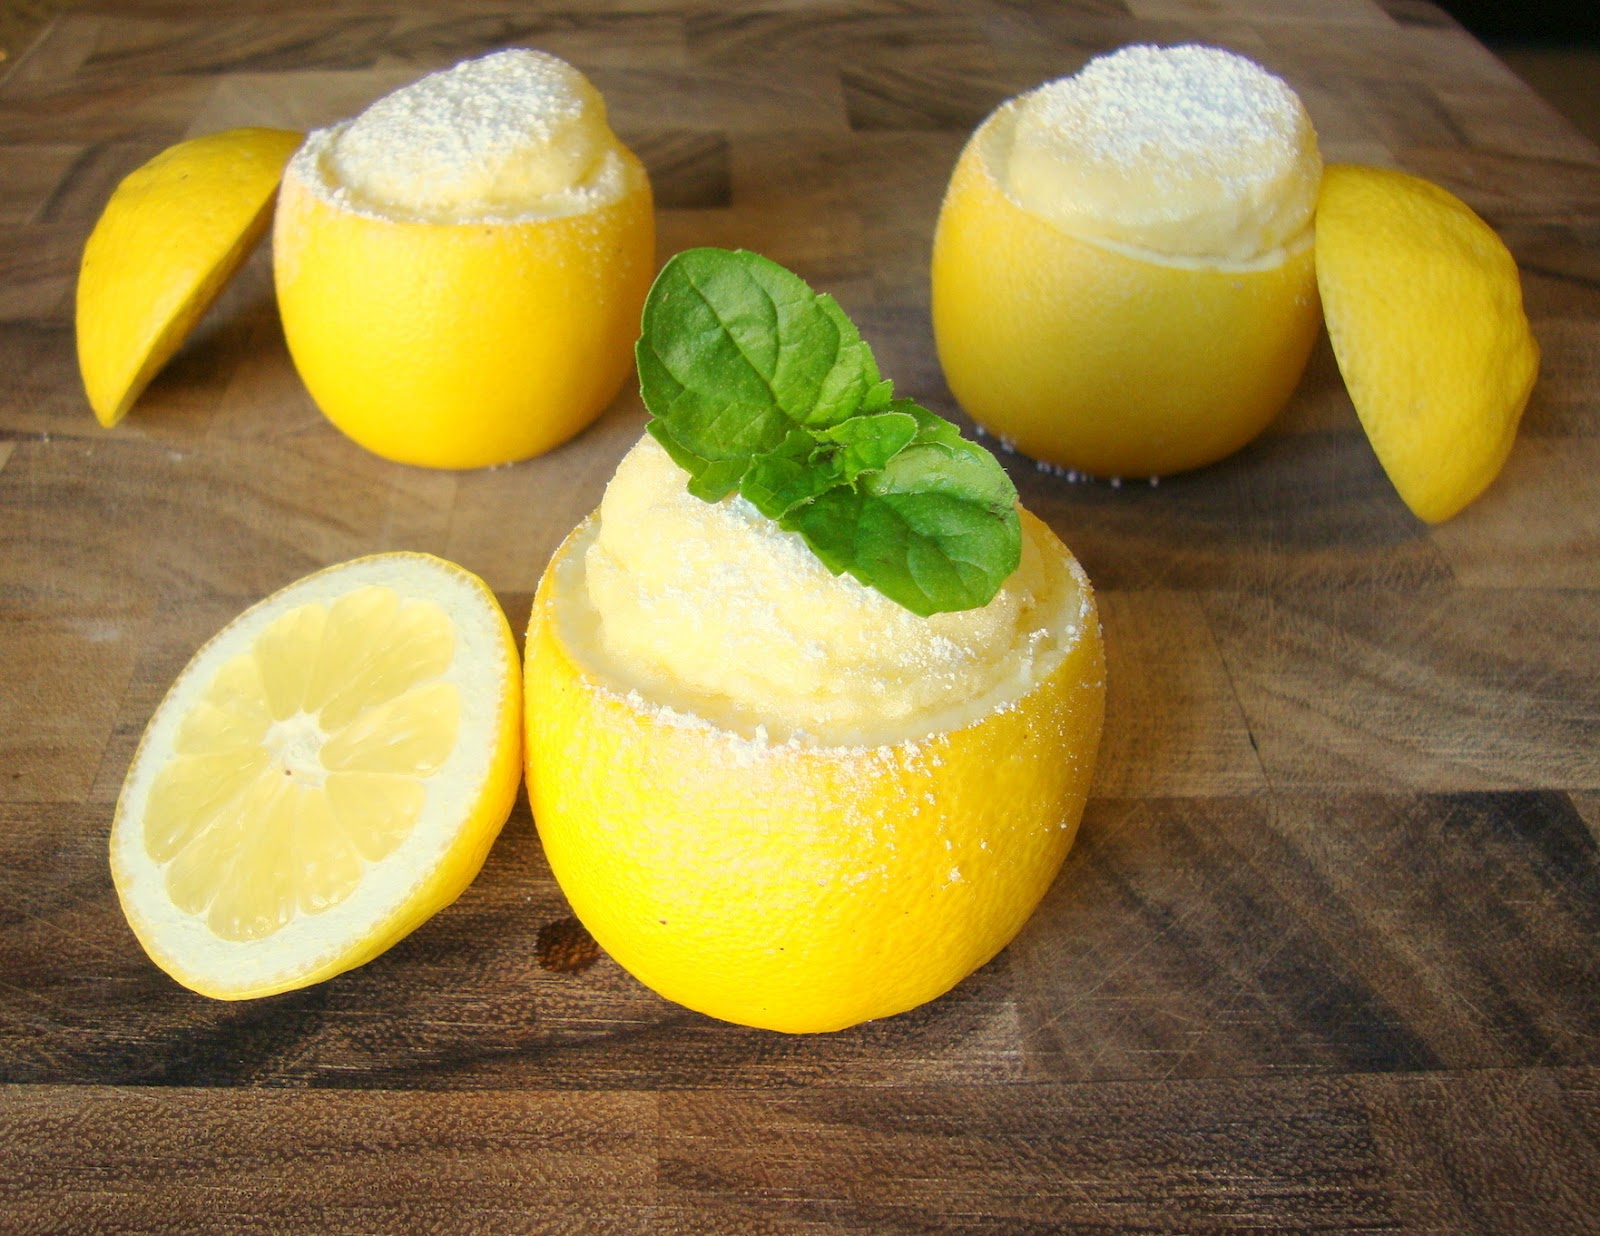 lime souffles little lemon souffles little lemon souffles little lemon ...